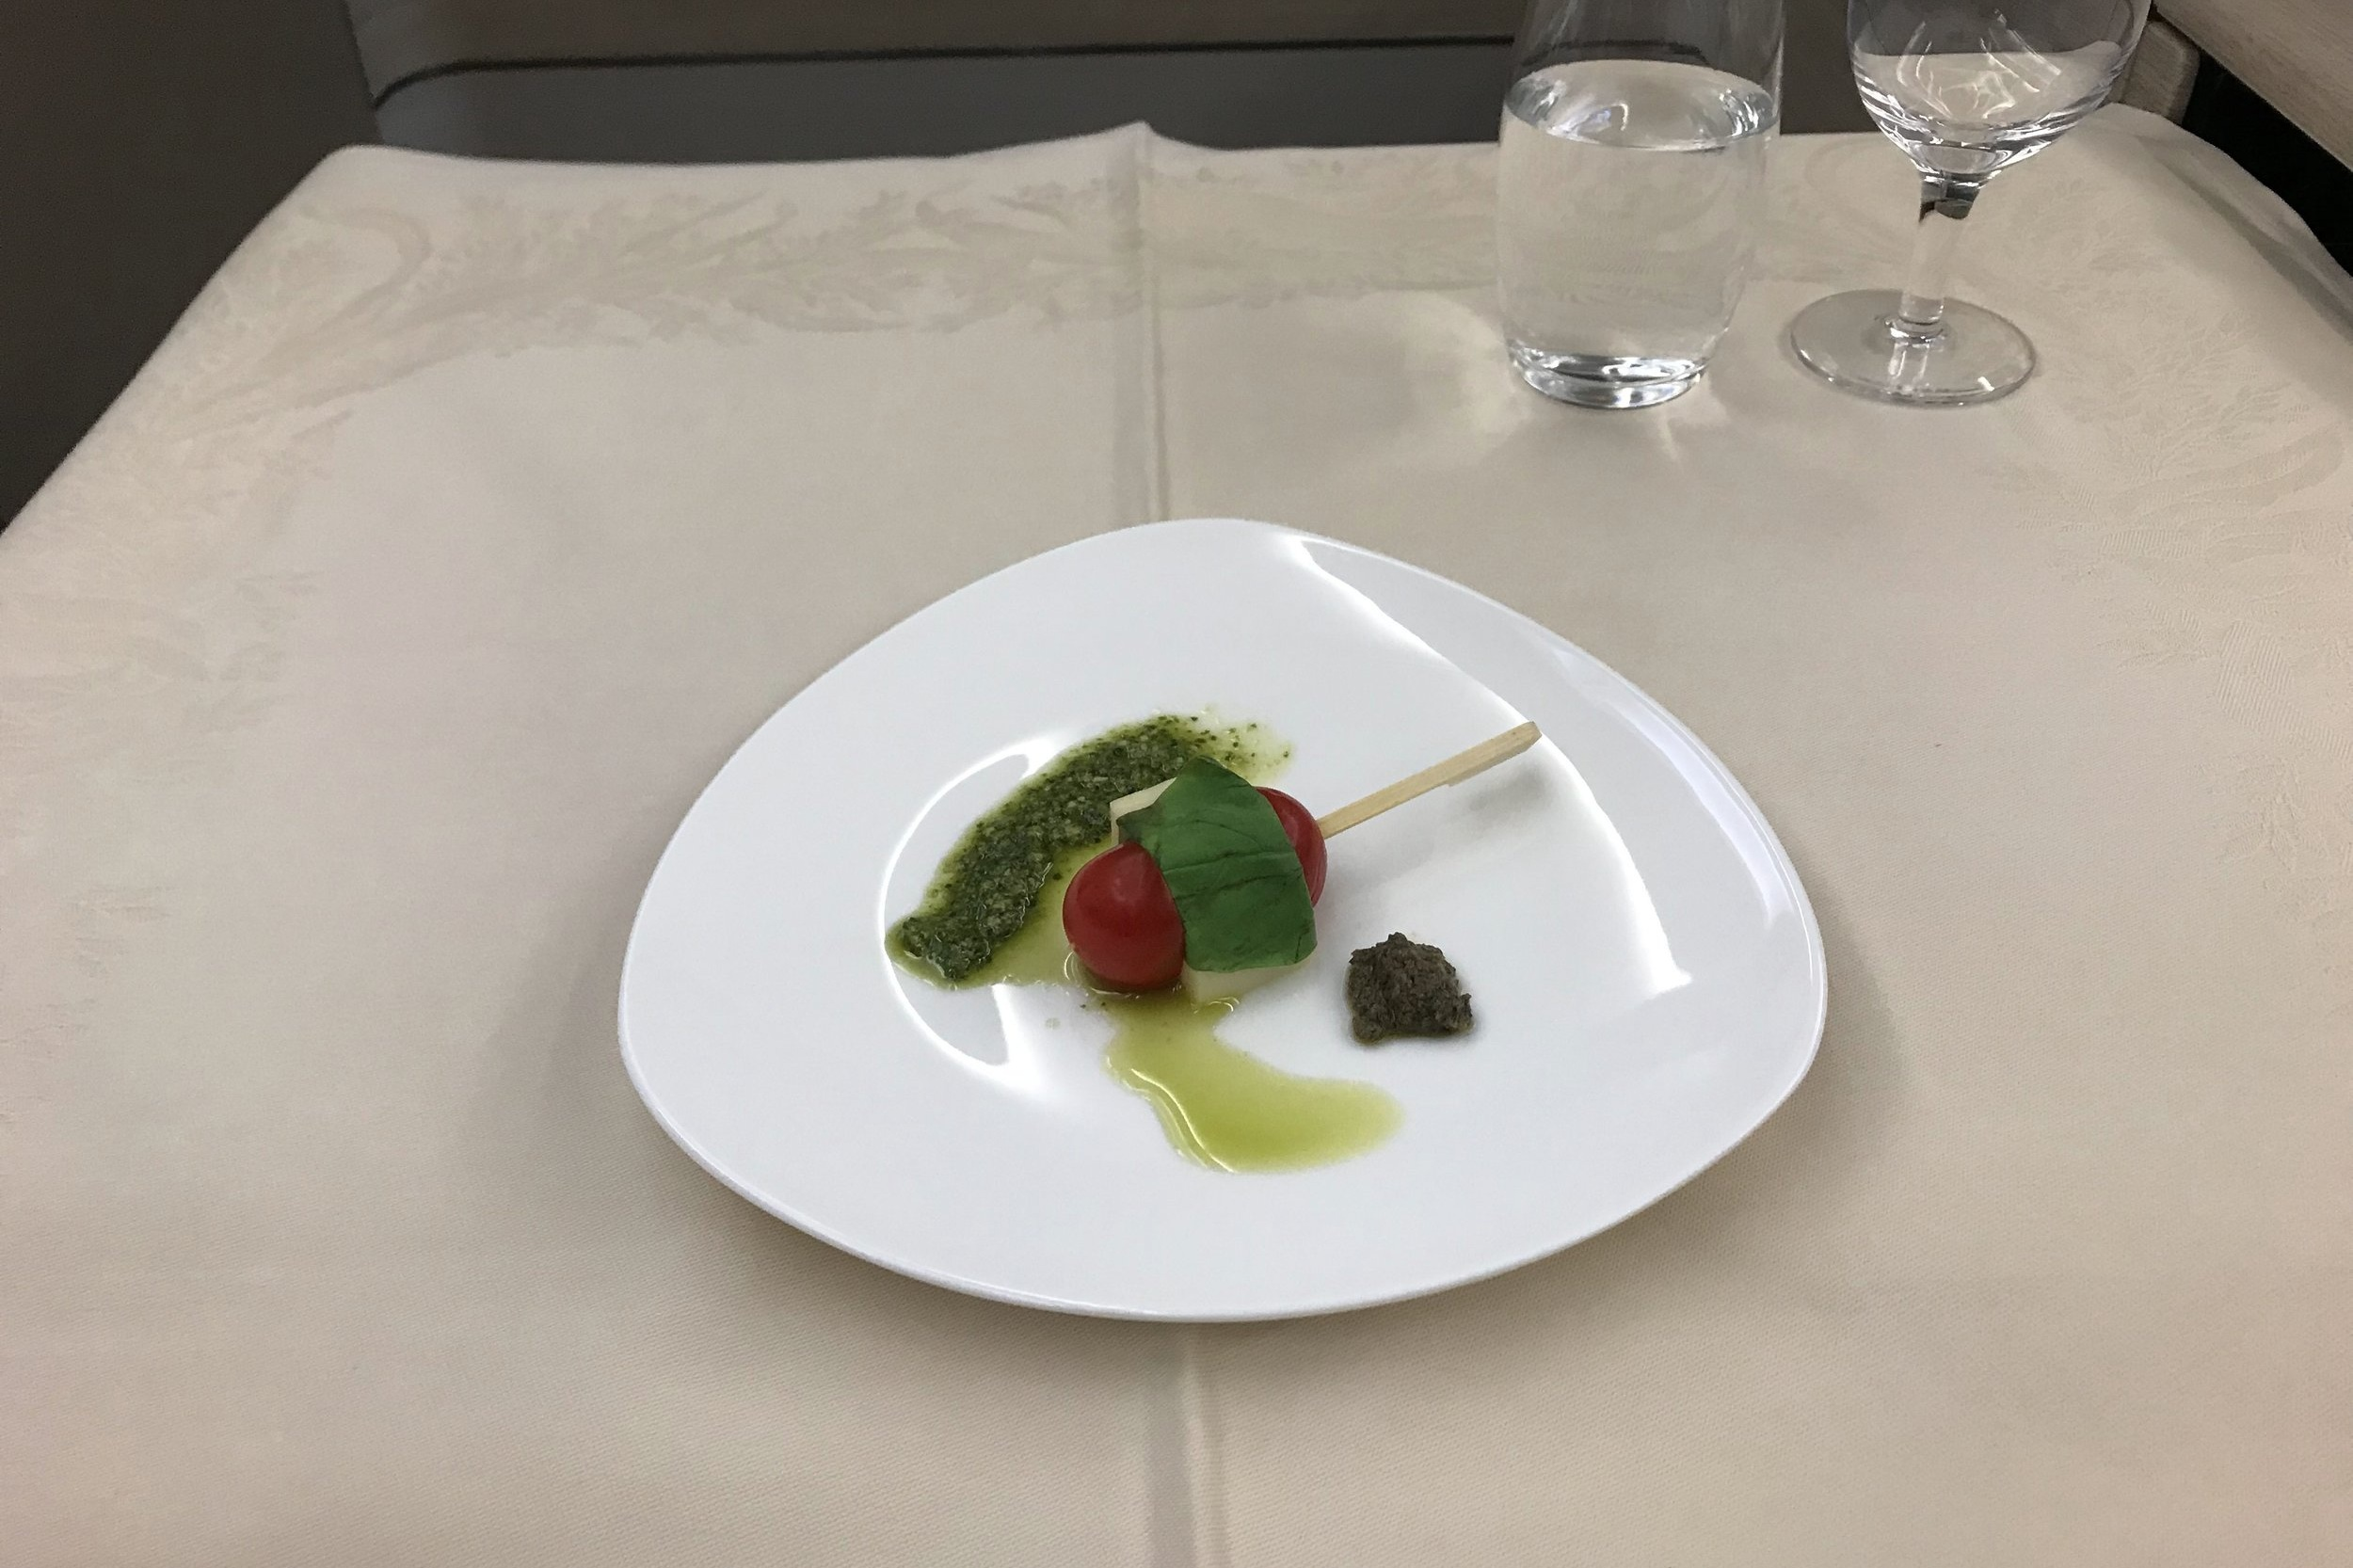 Asiana Airlines First Class – Mozzarella-and-cherry-tomato skewer